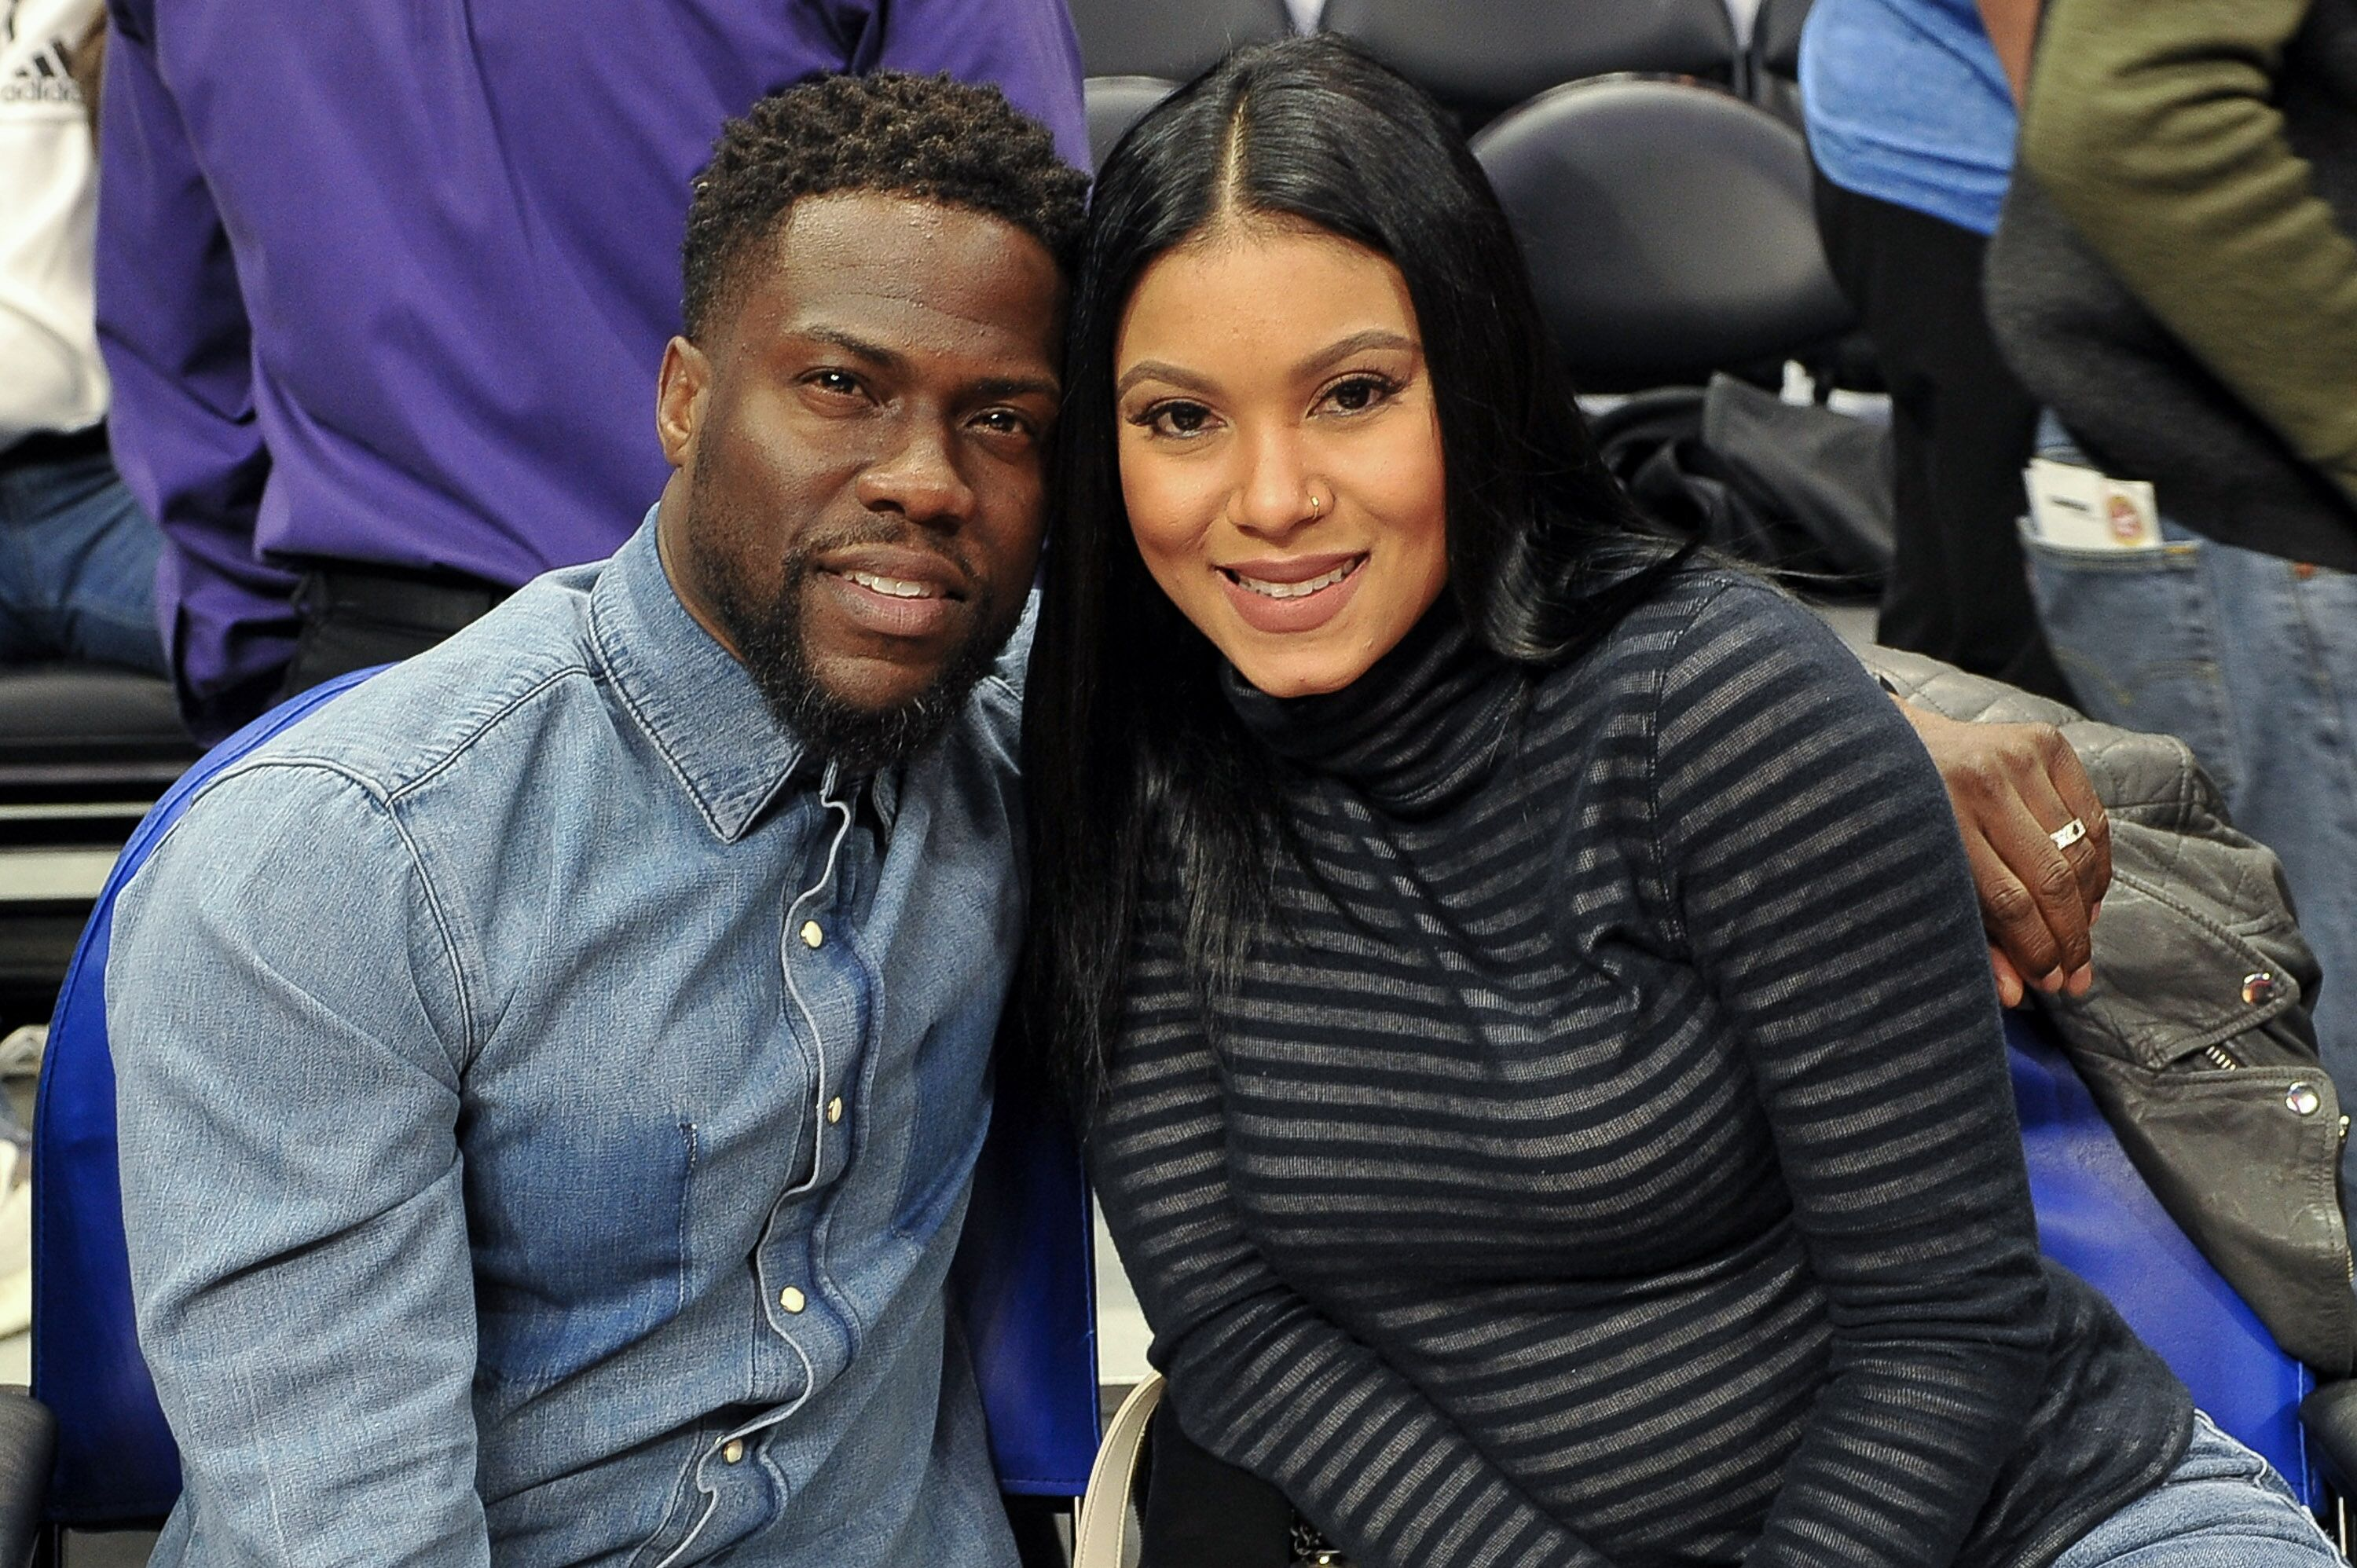 Kevin Hart and Eniko Parrish Hart at a basketball game at Staples Center on January 22, 2018. | Photo: Getty Images